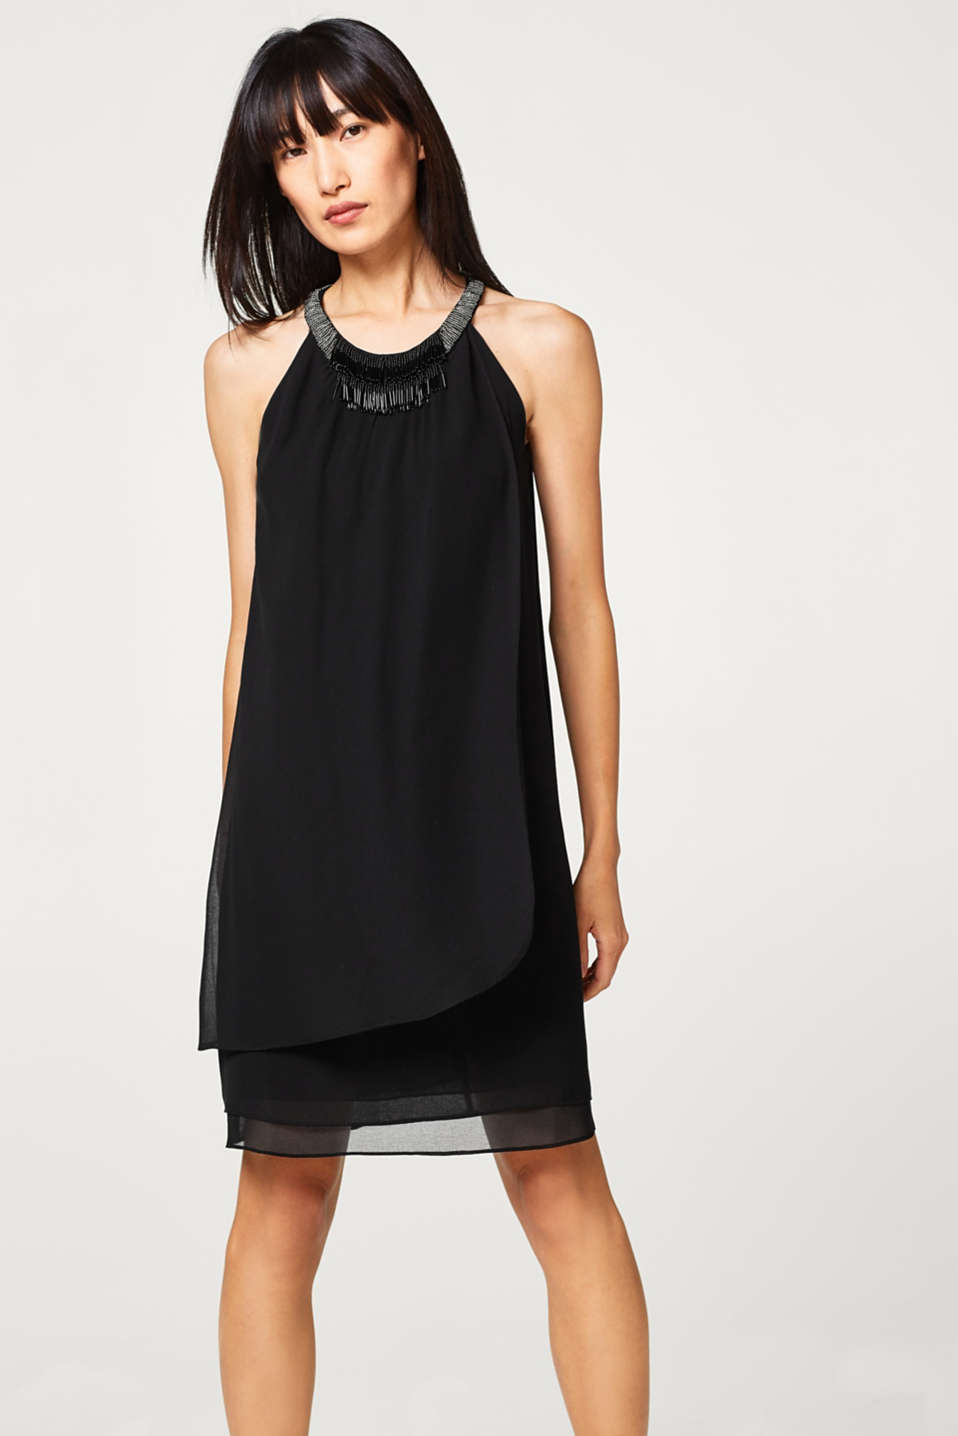 Esprit - Chiffon dress with a layered effect and decorative stays